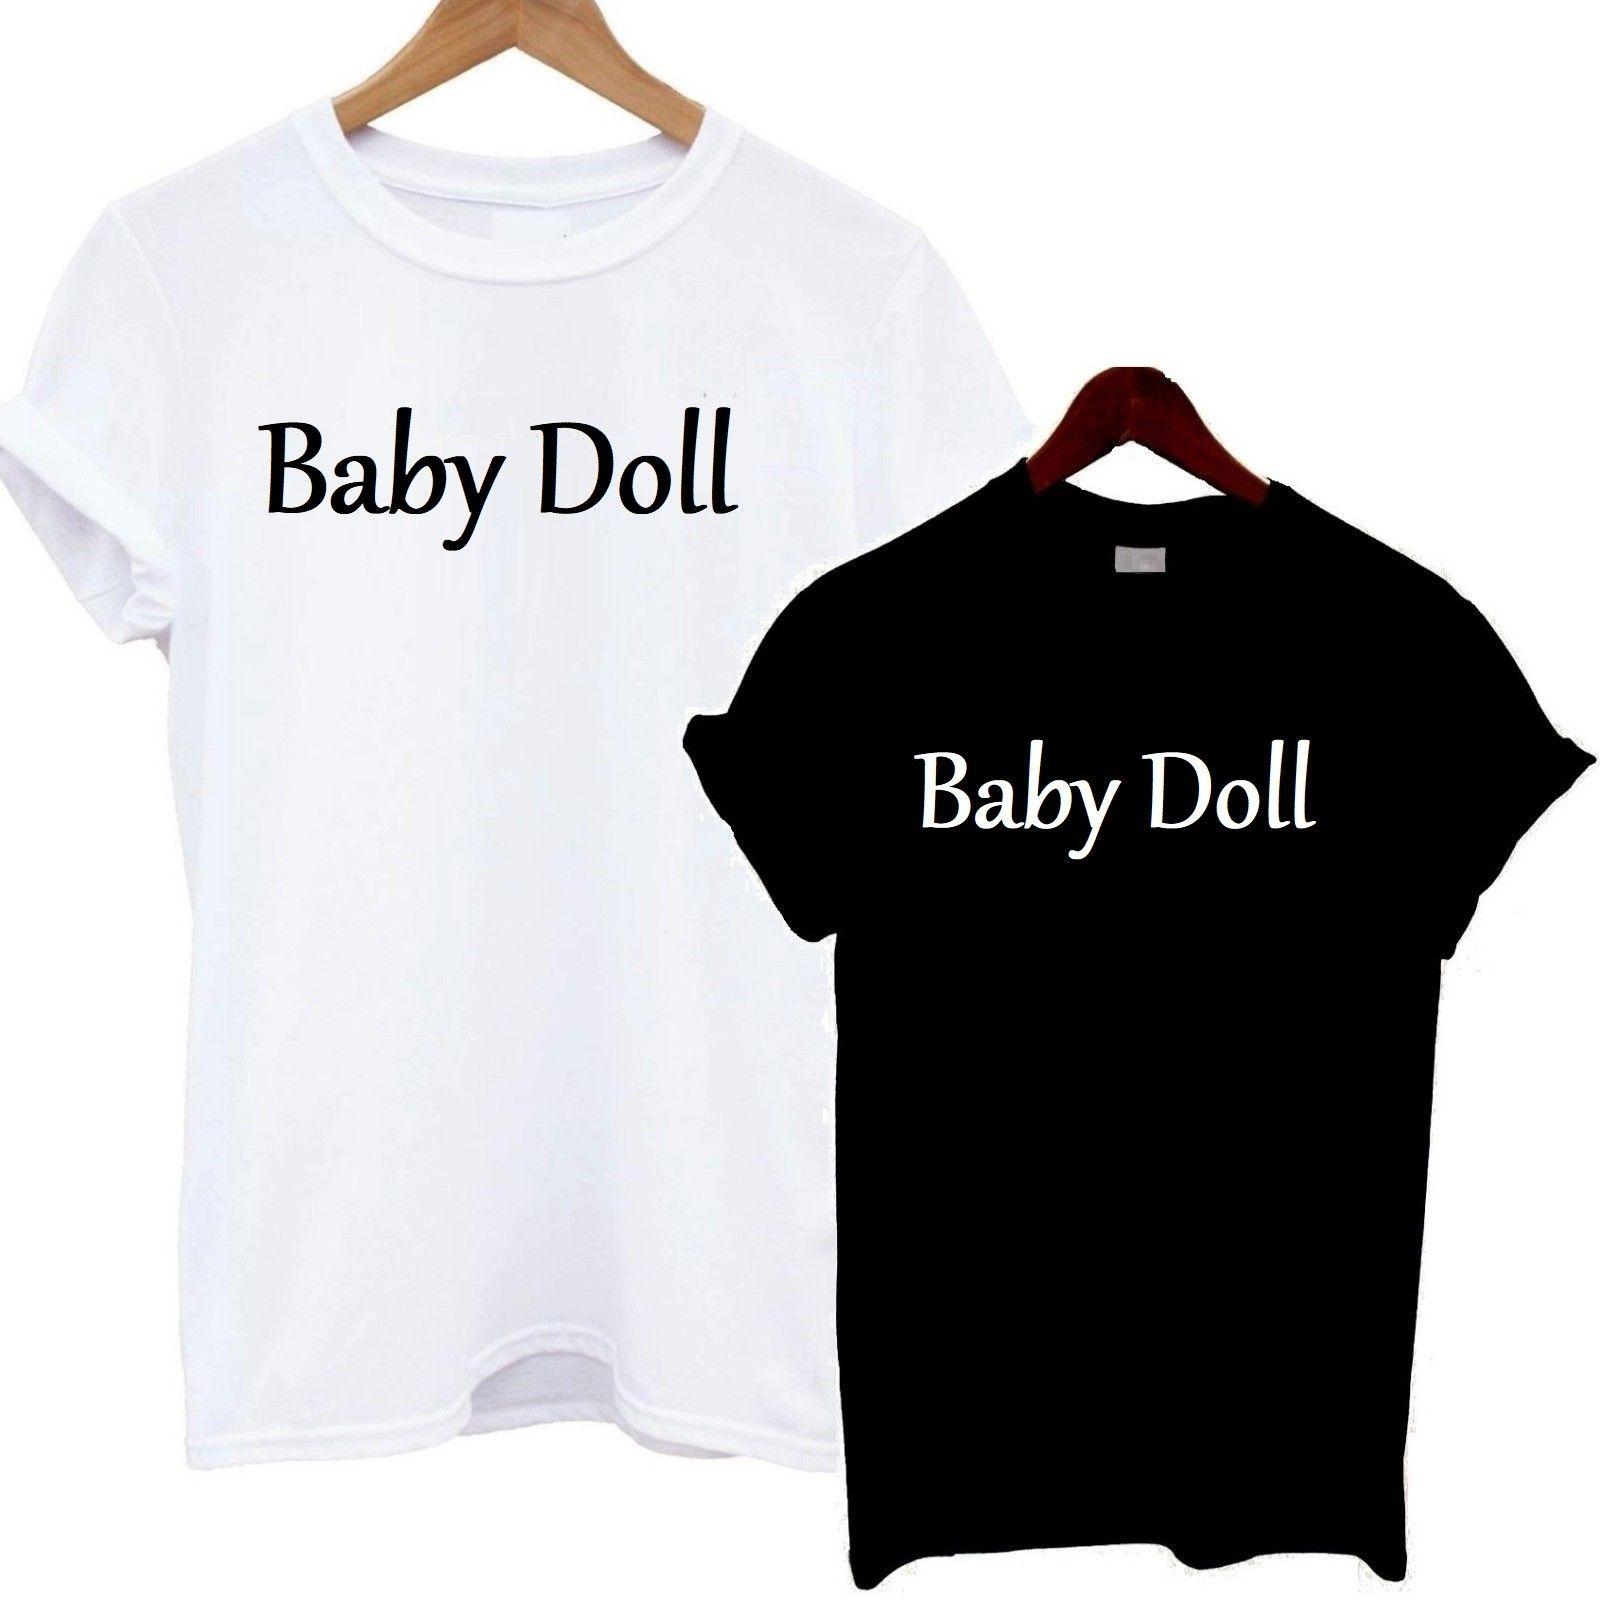 e5a464e927e9 Baby Doll T Shirt Tee Top Slogan Tshirt Girl Statement Funky Sexy Hot Cute  LoveFunny Unisex Casual Tshirt Top Ot Shirts Best Designer T Shirts From ...